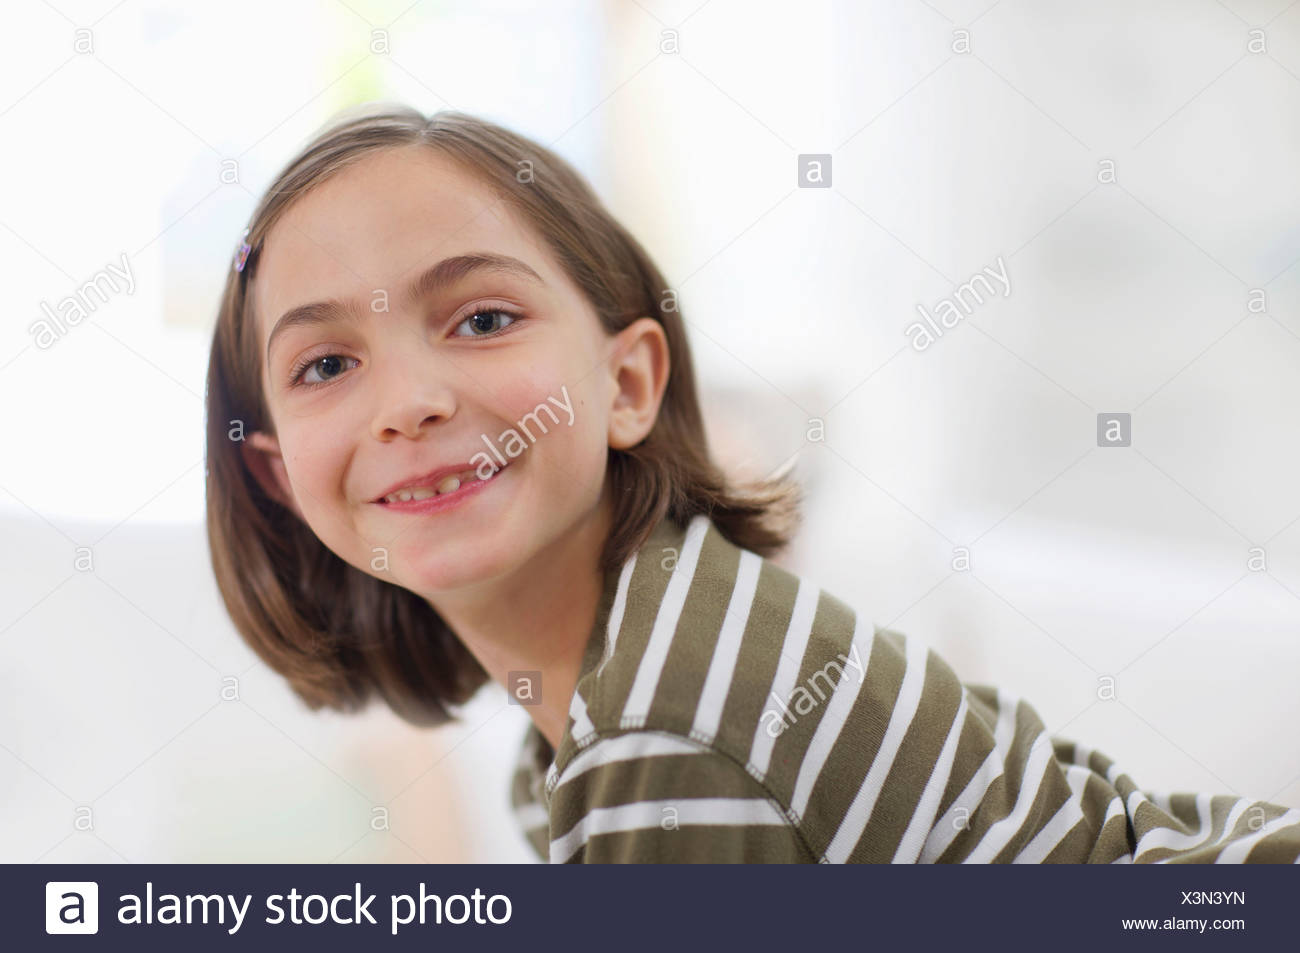 little girl smiling all over the face - Stock Image